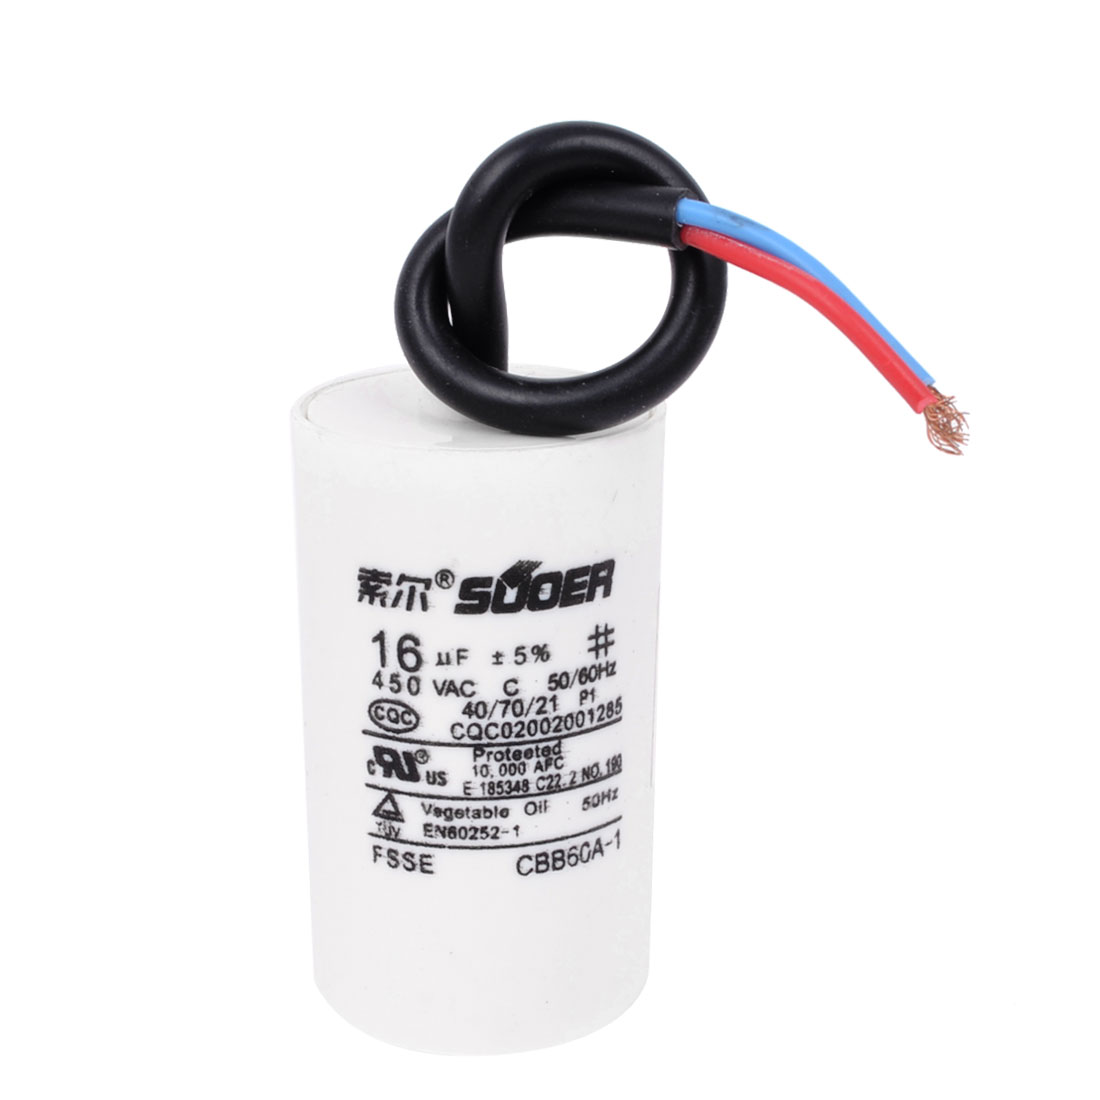 Washing Machine Washer Polypropylene Film Dual Wire Motor Running Capacitor AC 450V 16uF CBB60